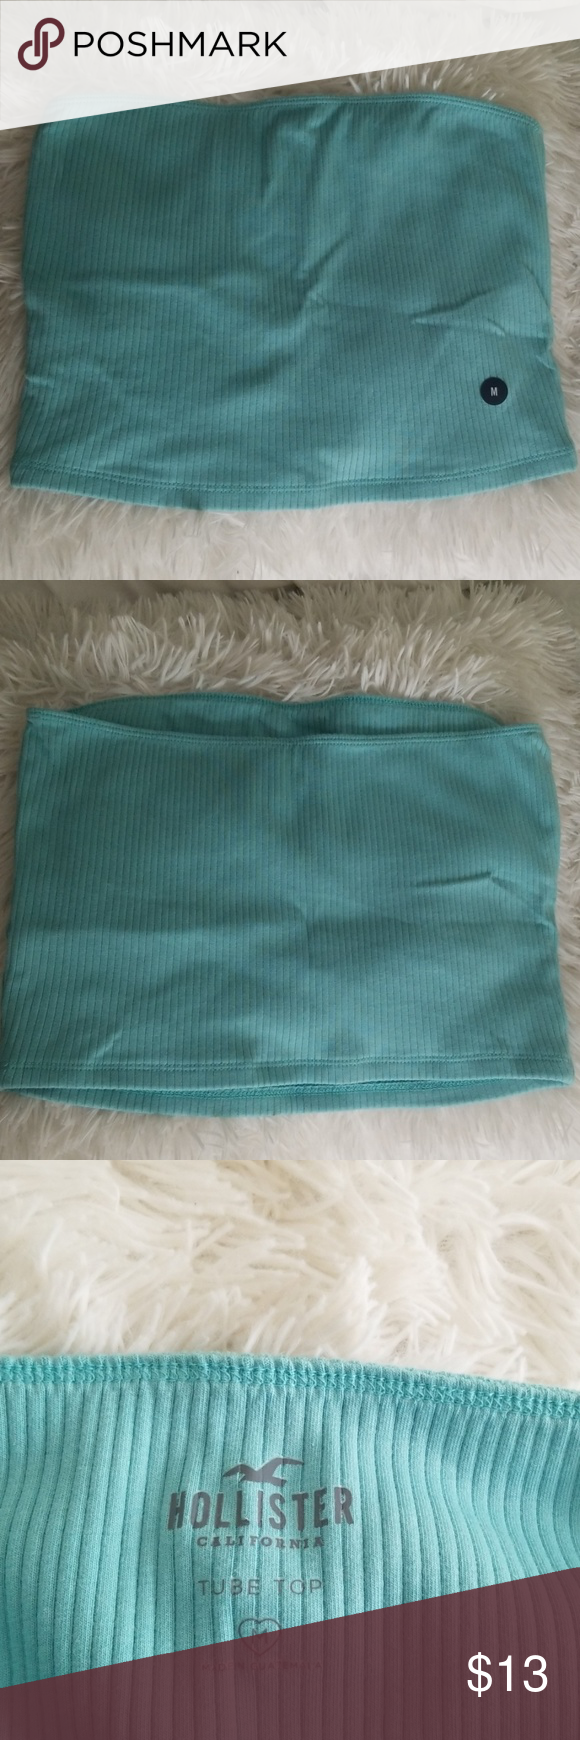 teal Hollister tube top • teal • tube top • brand new never worn • in perfect condition Hollister Tops Crop Tops #tubetopoutfits teal Hollister tube top • teal • tube top • brand new never worn • in perfect condition Hollister Tops Crop Tops #tubetopoutfits